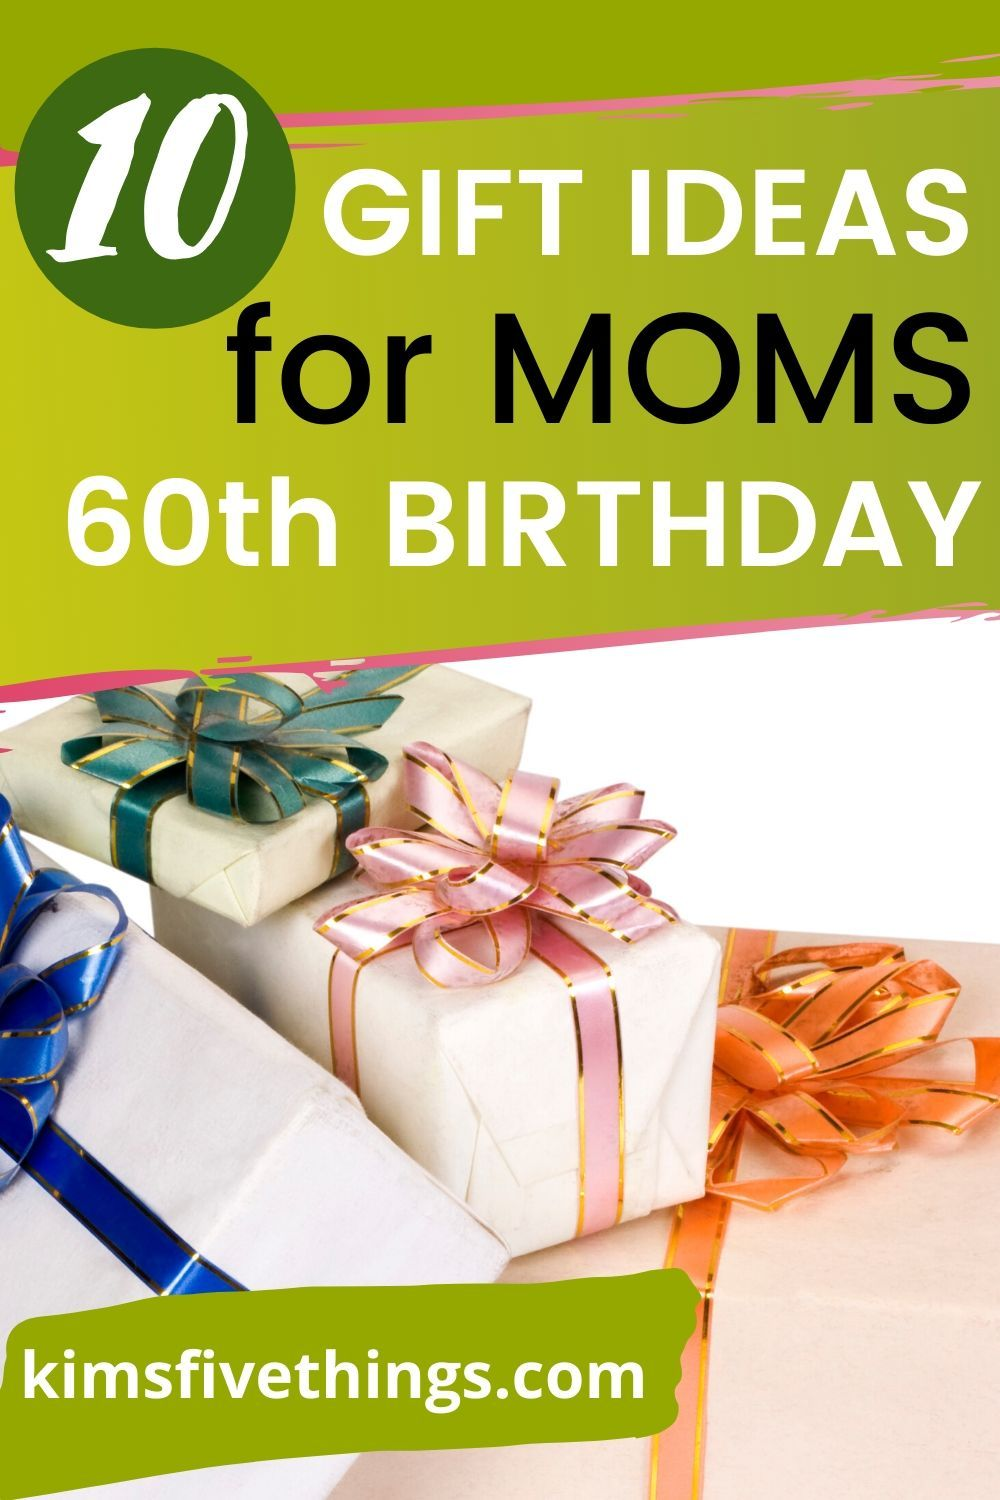 10 Best 60th Birthday Gift Ideas For Mom Kims Home Ideas In 2020 60th Birthday Gifts 60th Birthday Birthday Gift Ideas